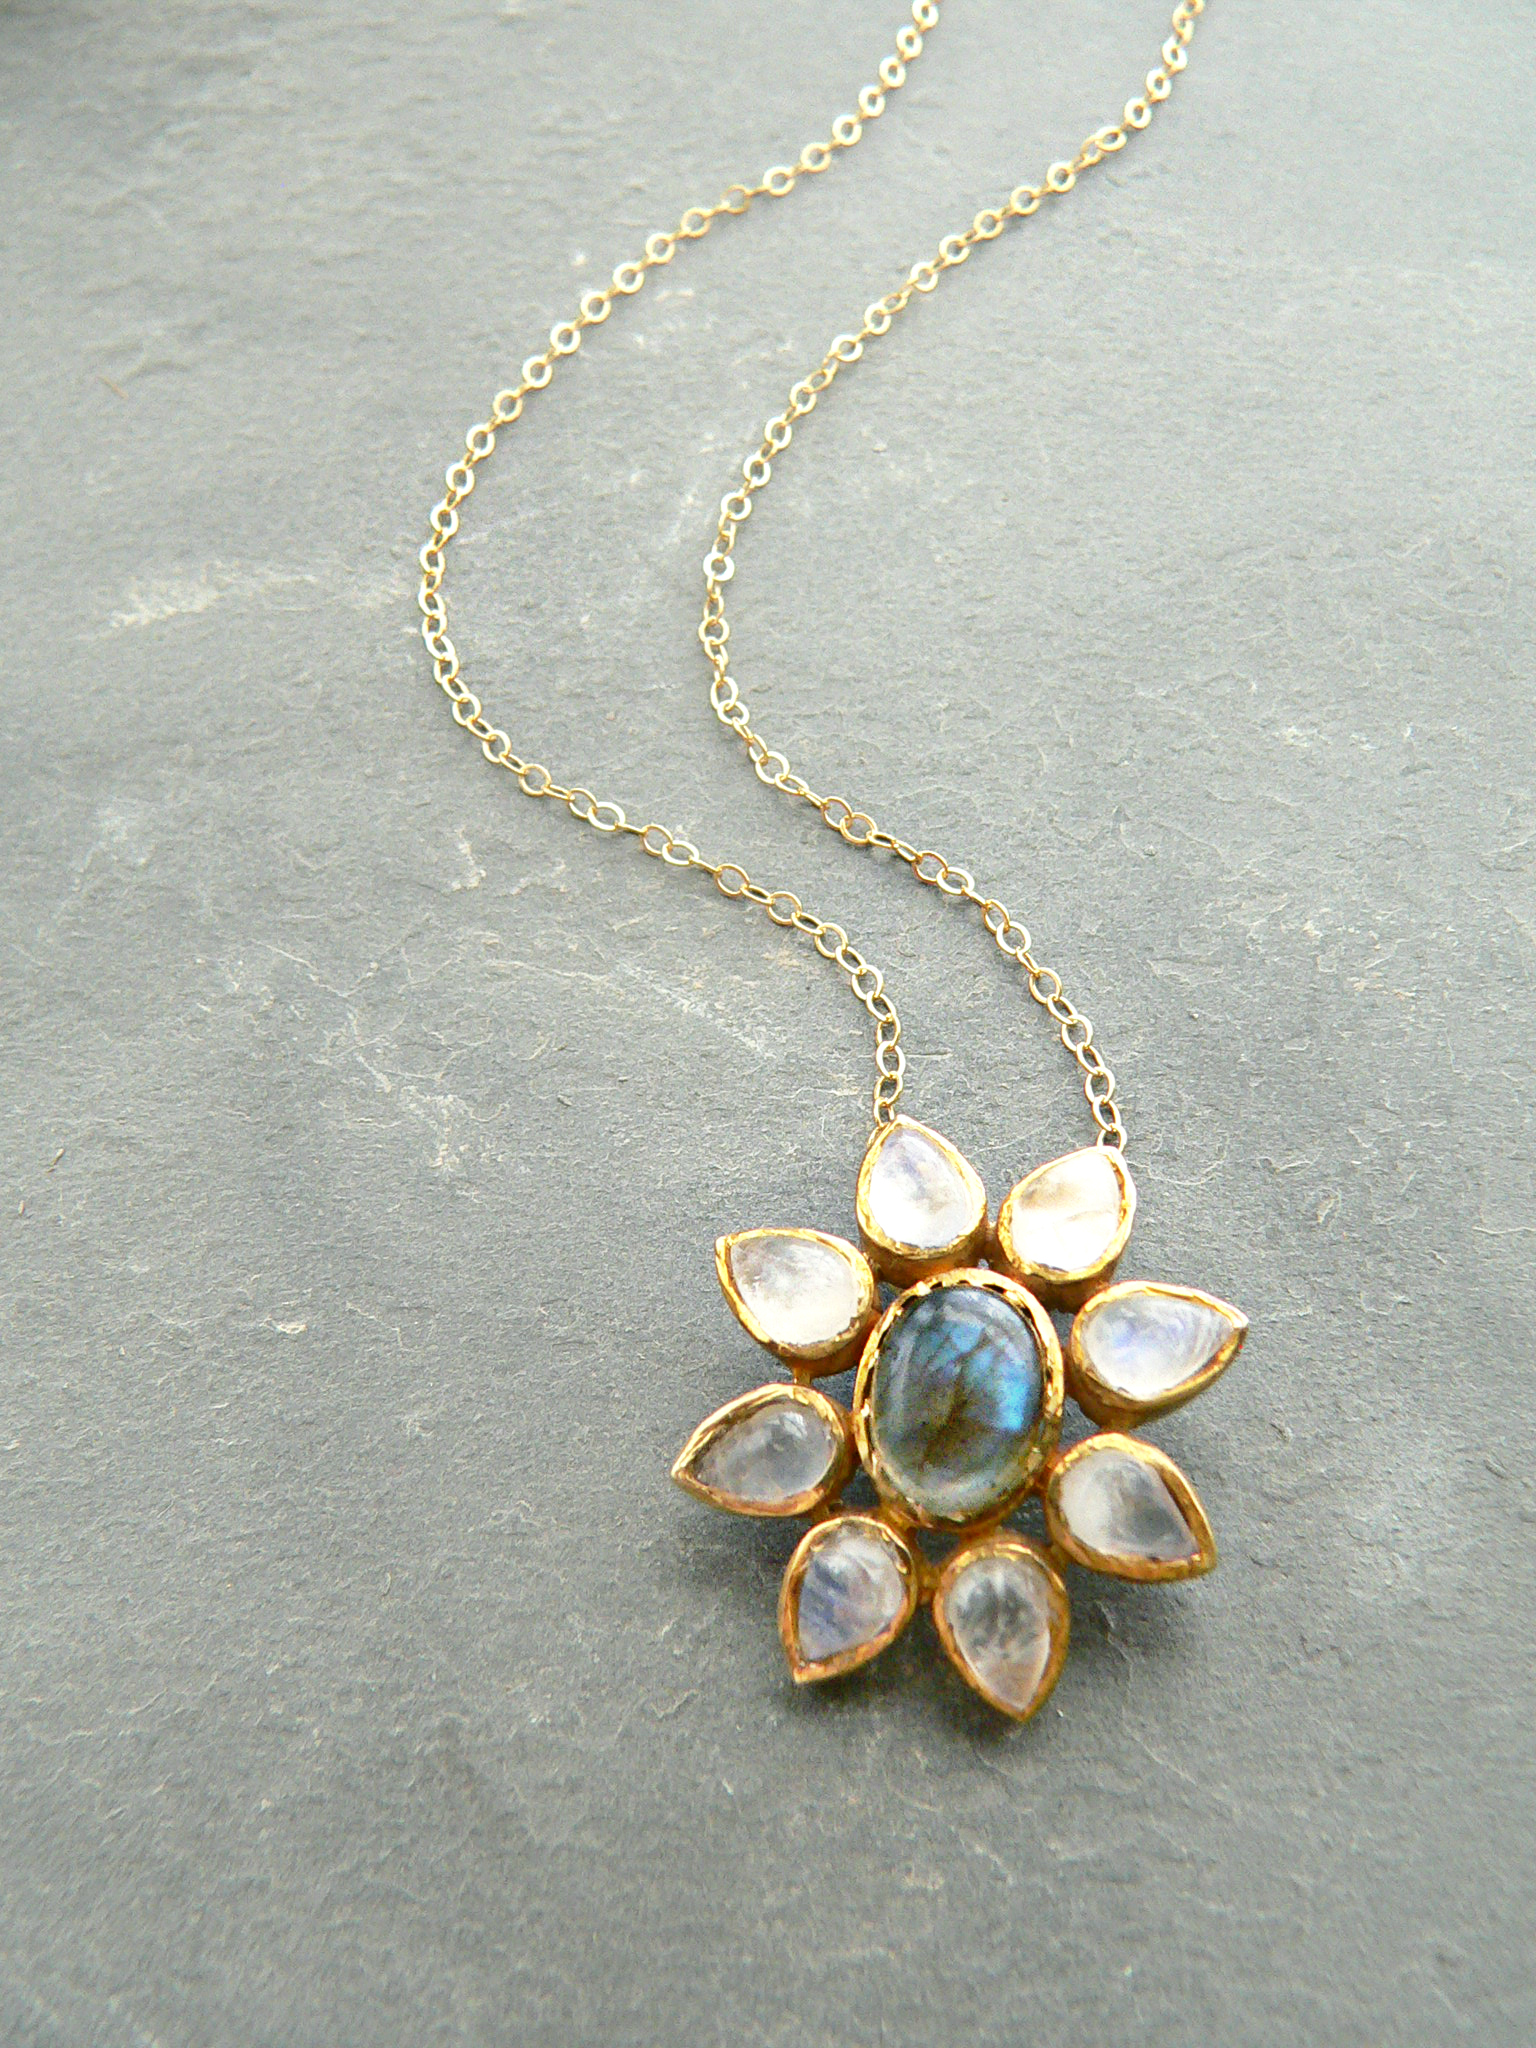 LABRADORITE + MOONSTONE NECKLACE